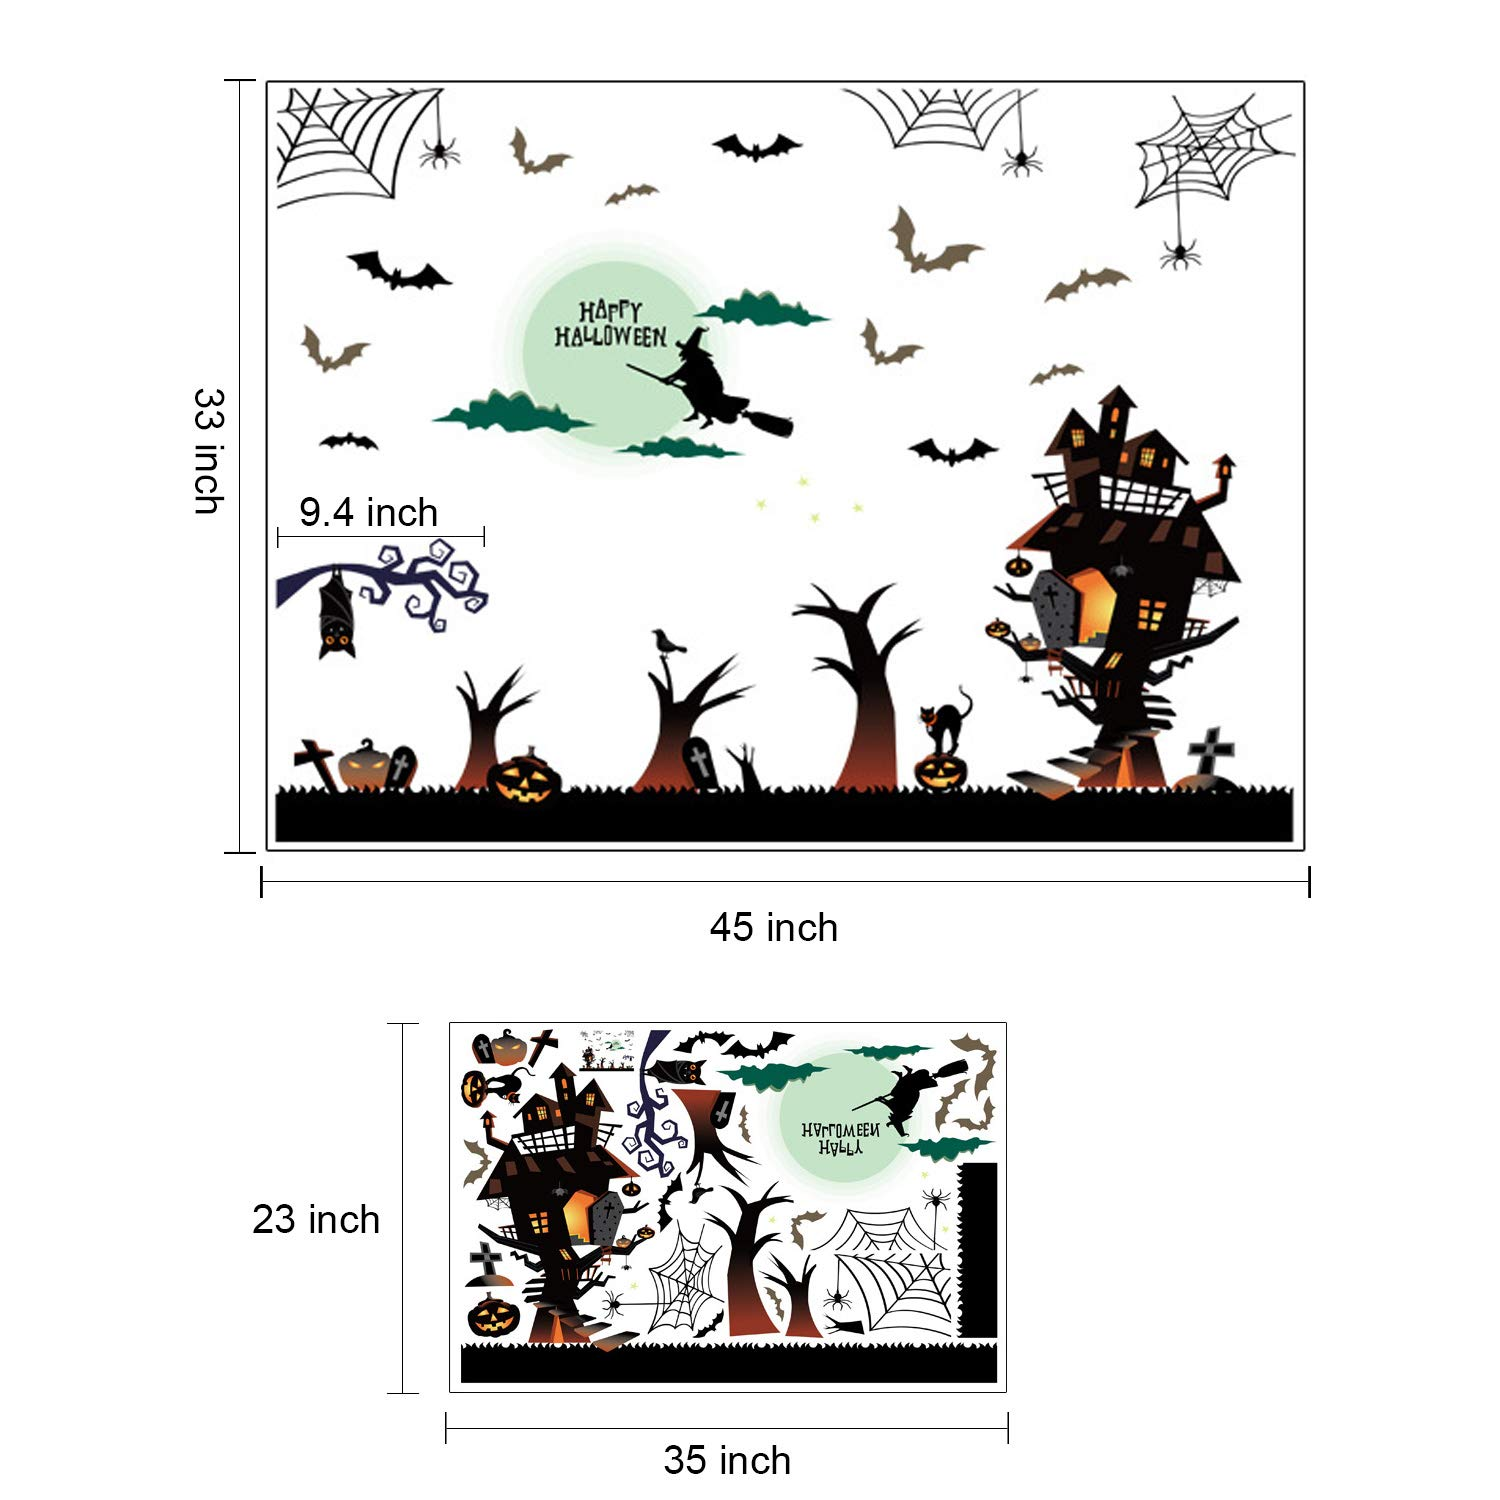 Type 2 Eichzhushp Happy Halloween Pumpkins Spooky Cemetery Witch and Bats Tomb Wall Decals Window Stickers Halloween Decorations for Kids Rooms Nursery Halloween Party